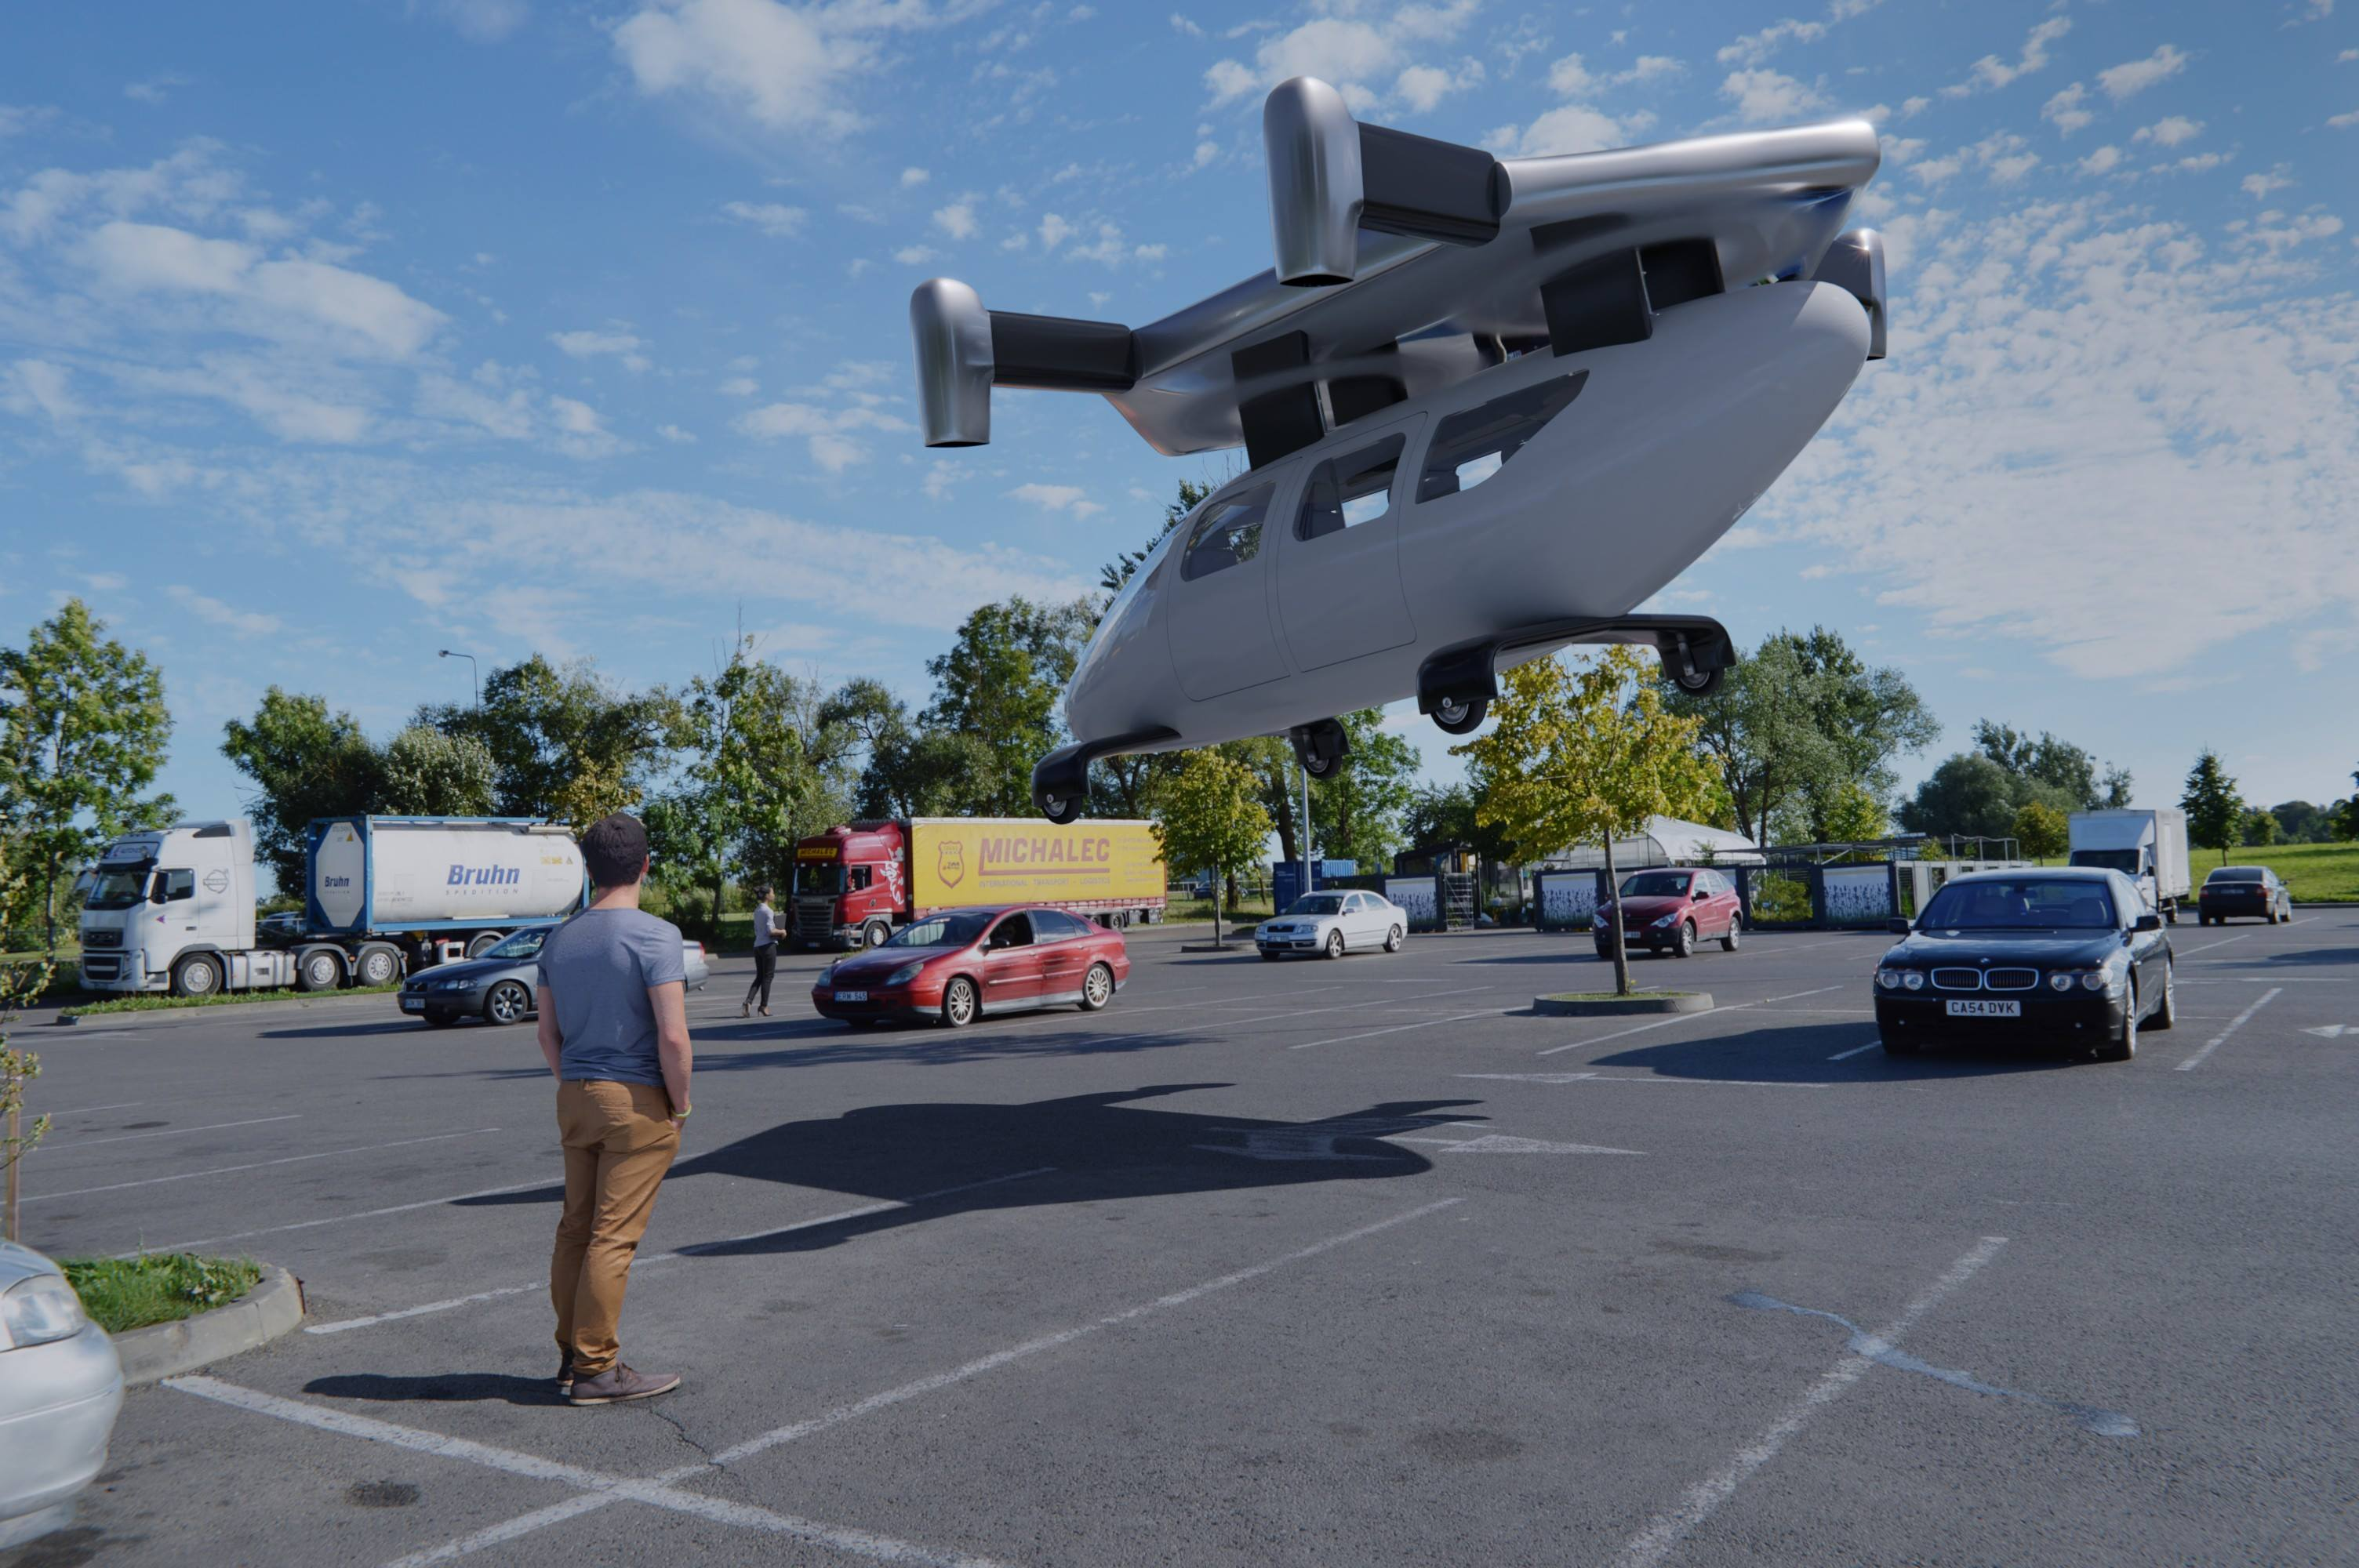 Jetcopter landing in a parking lot